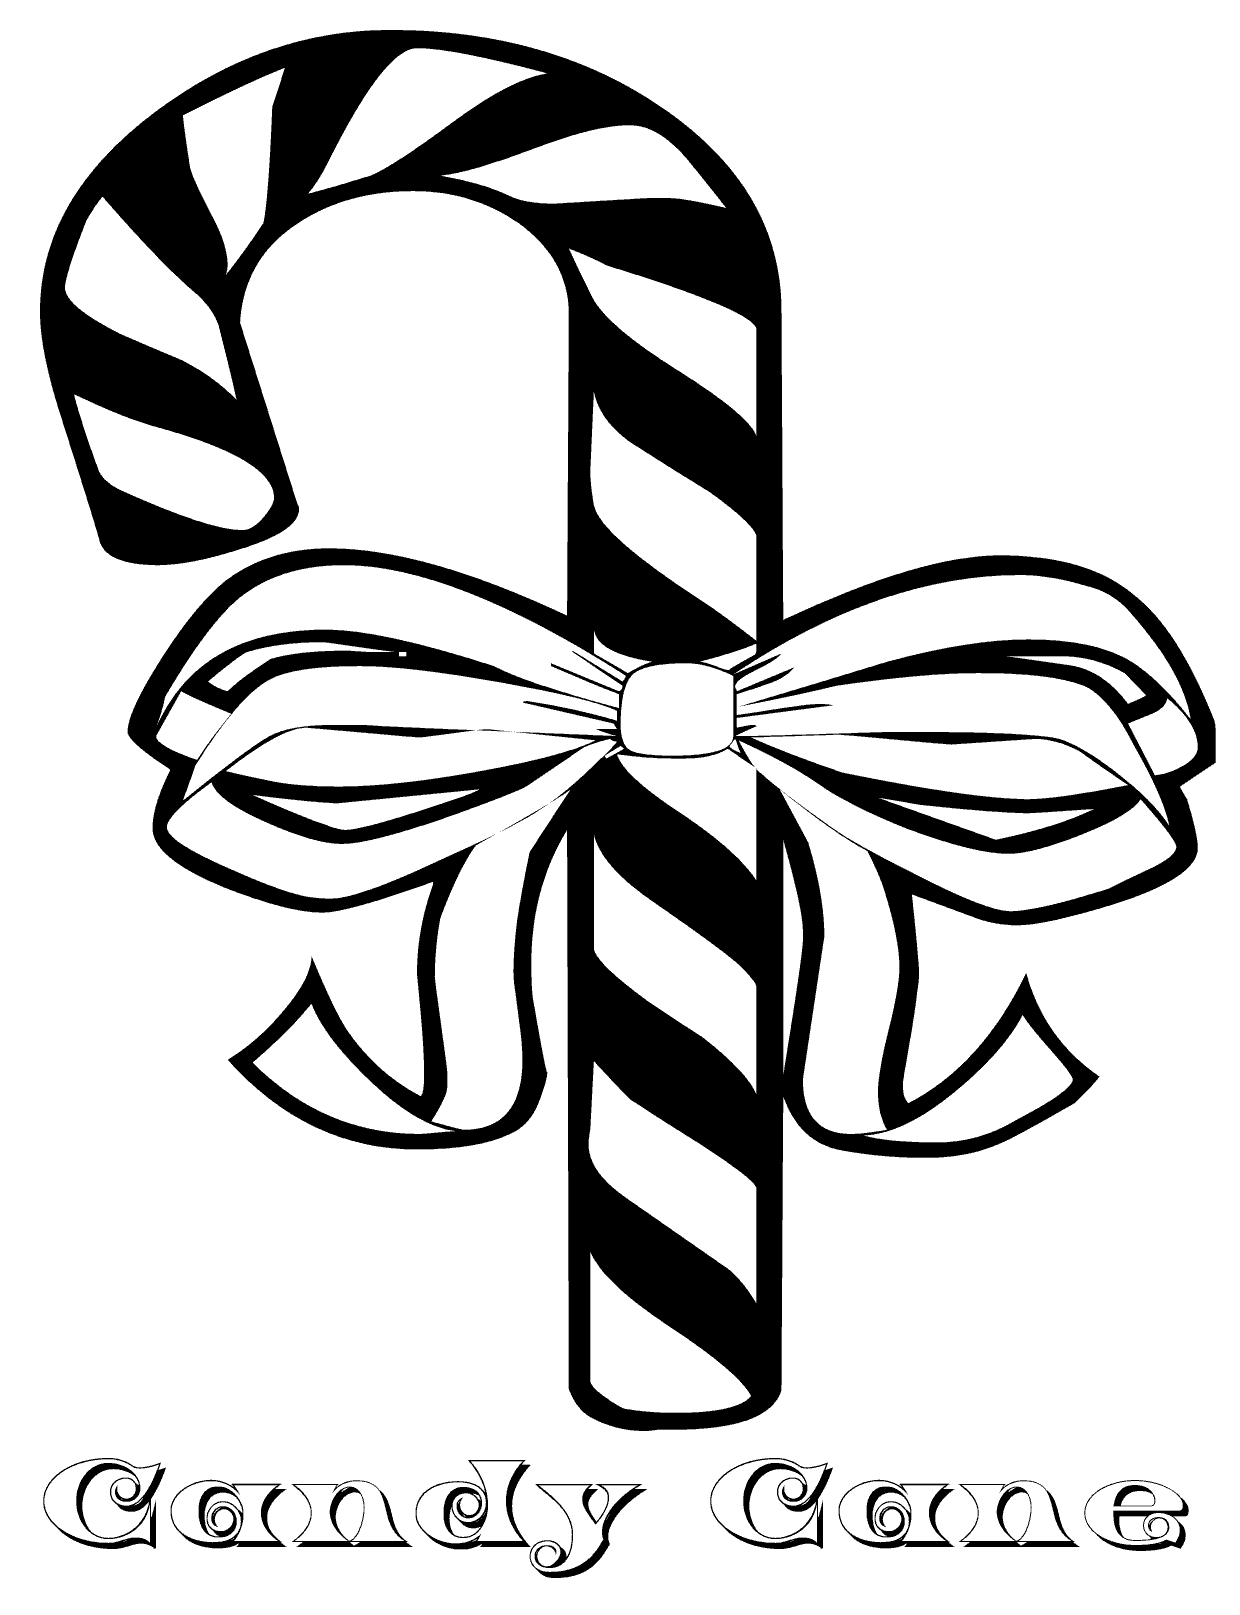 candy cane coloring pages free printable candy cane coloring pages for kids - Candy Cane Coloring Page